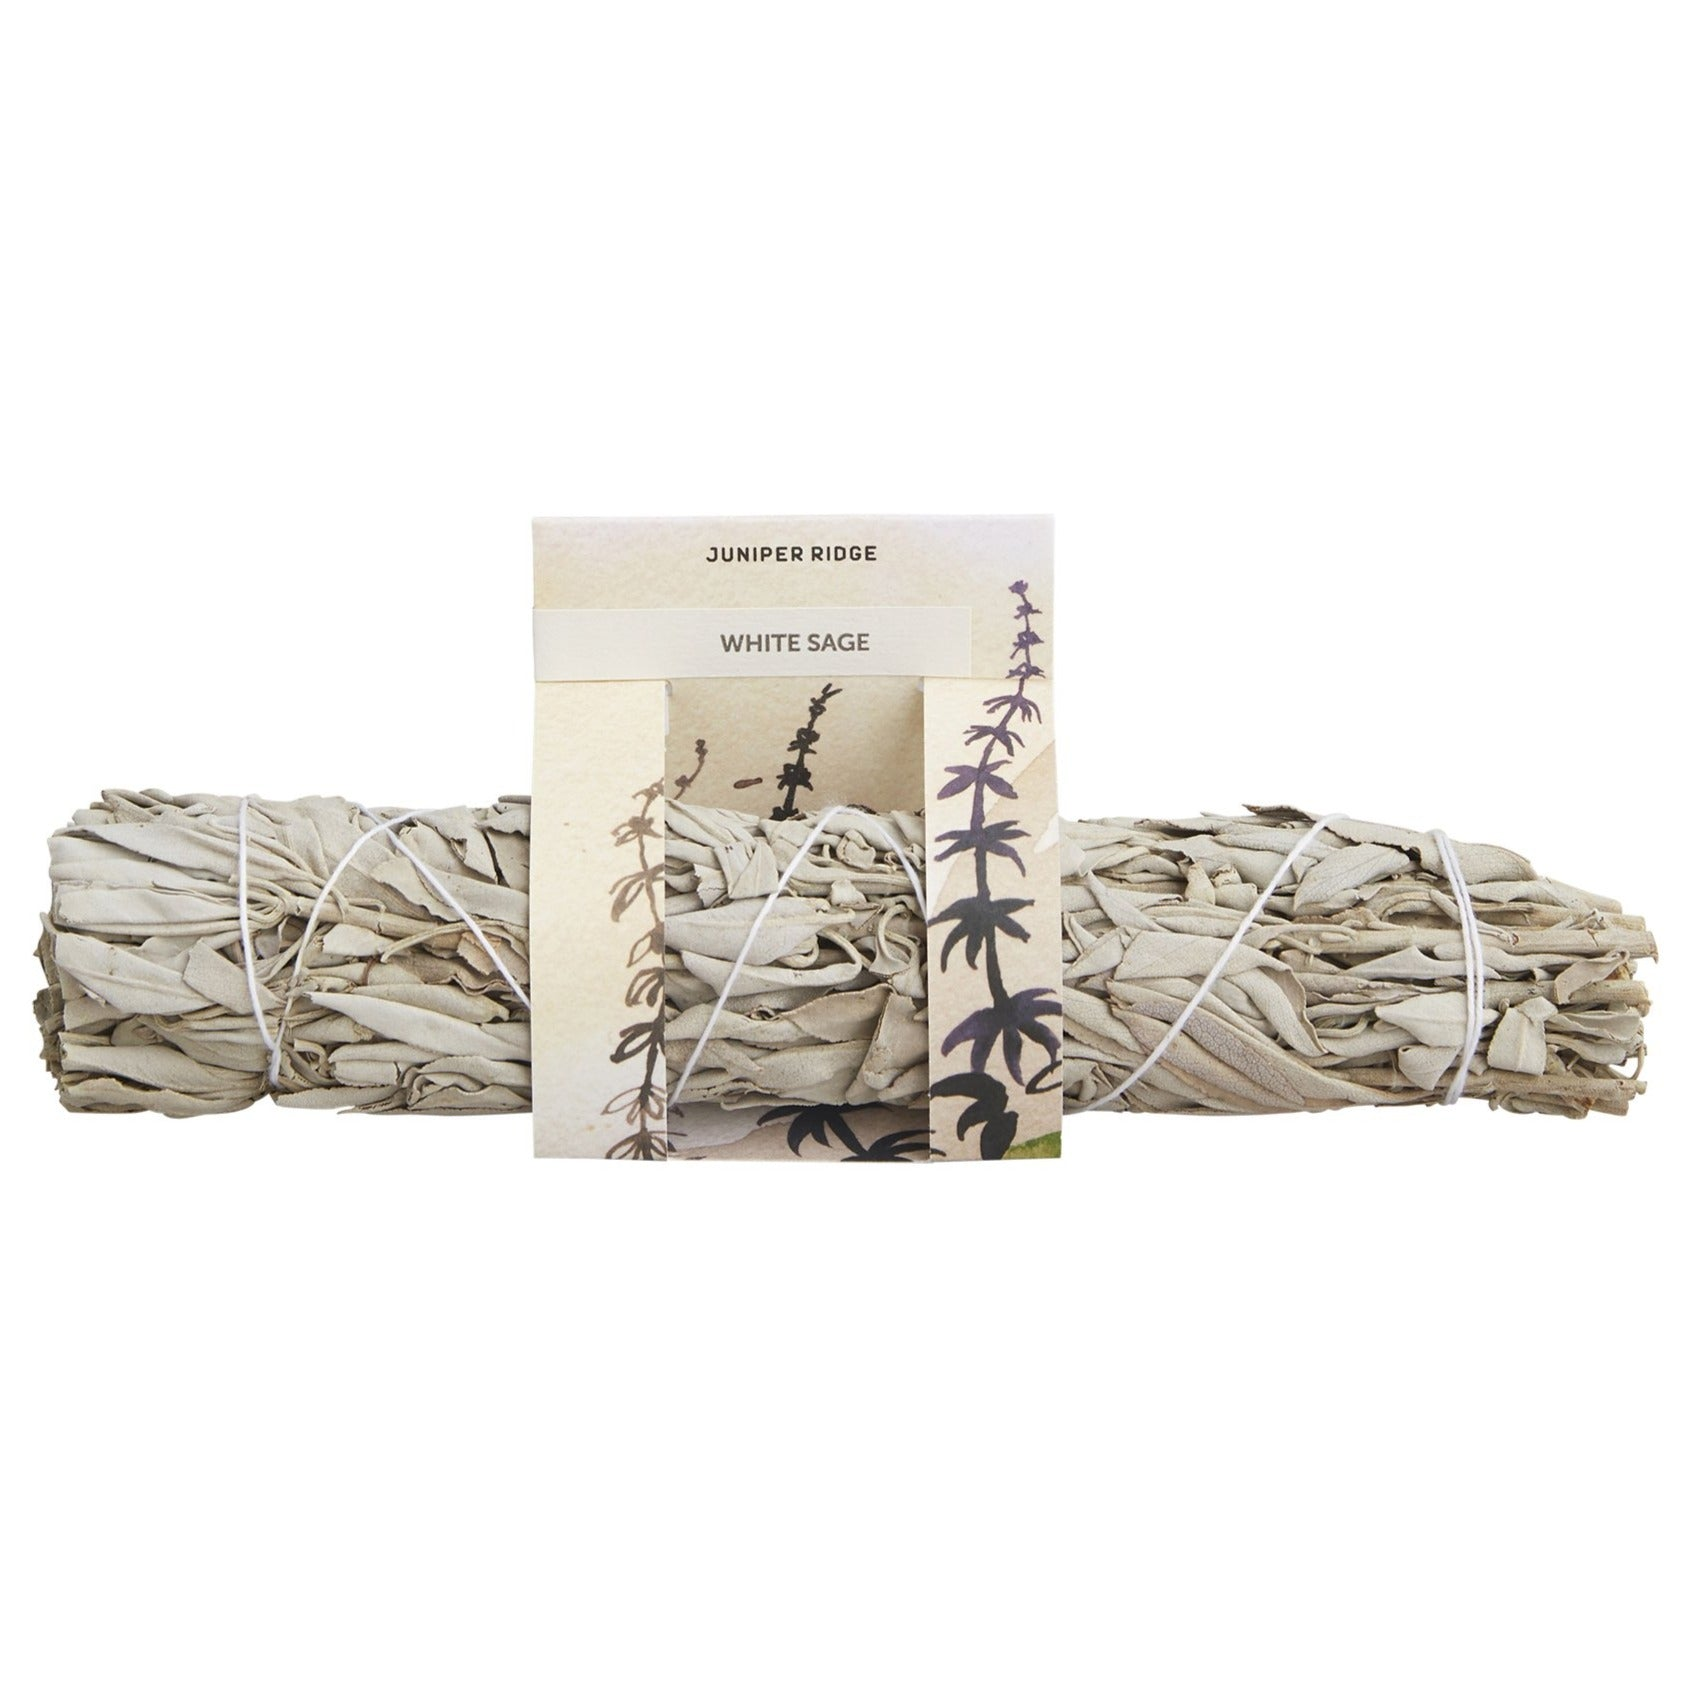 Juniper Ridge - White Sage Bundle Smudge Stick